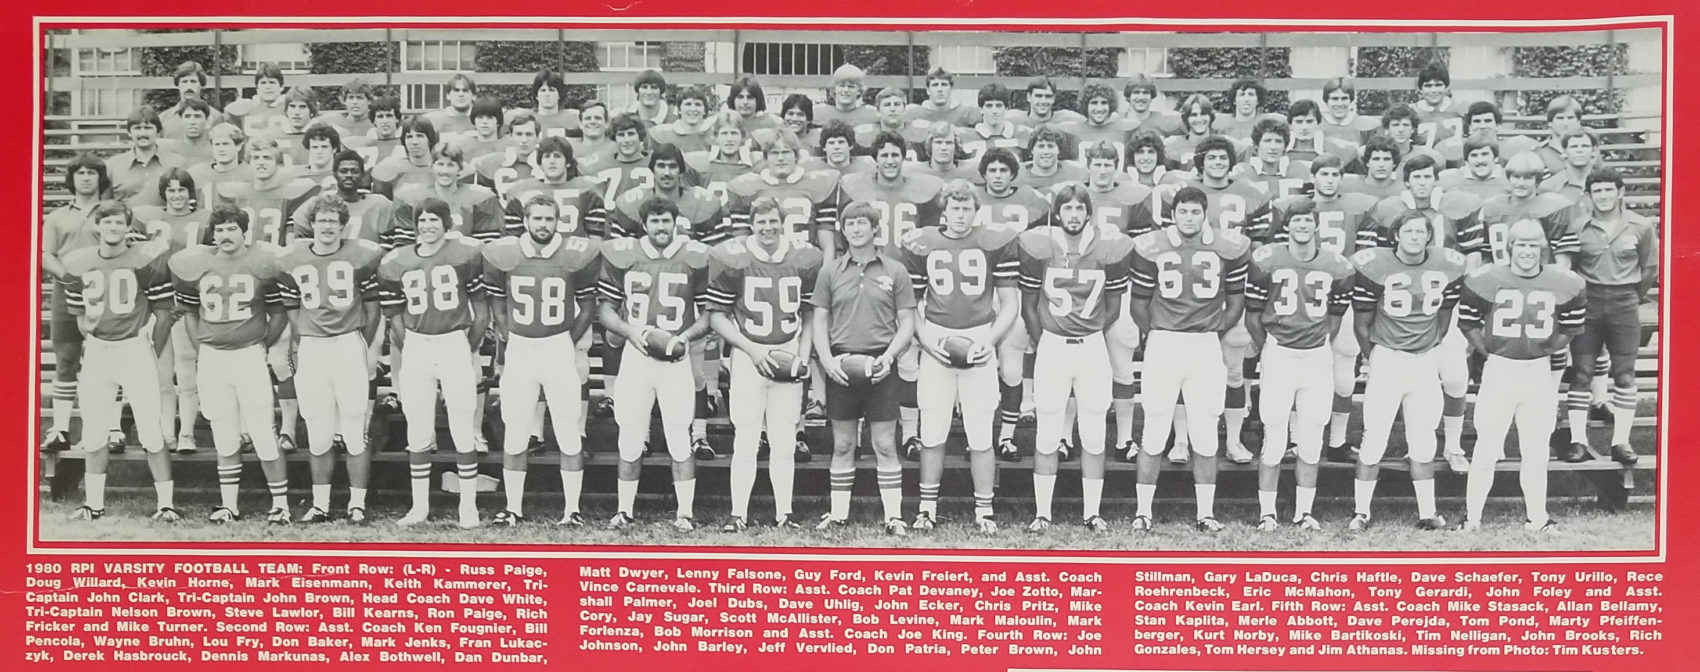 A photo of the 1980 RPI football team, which does not include John Wilson